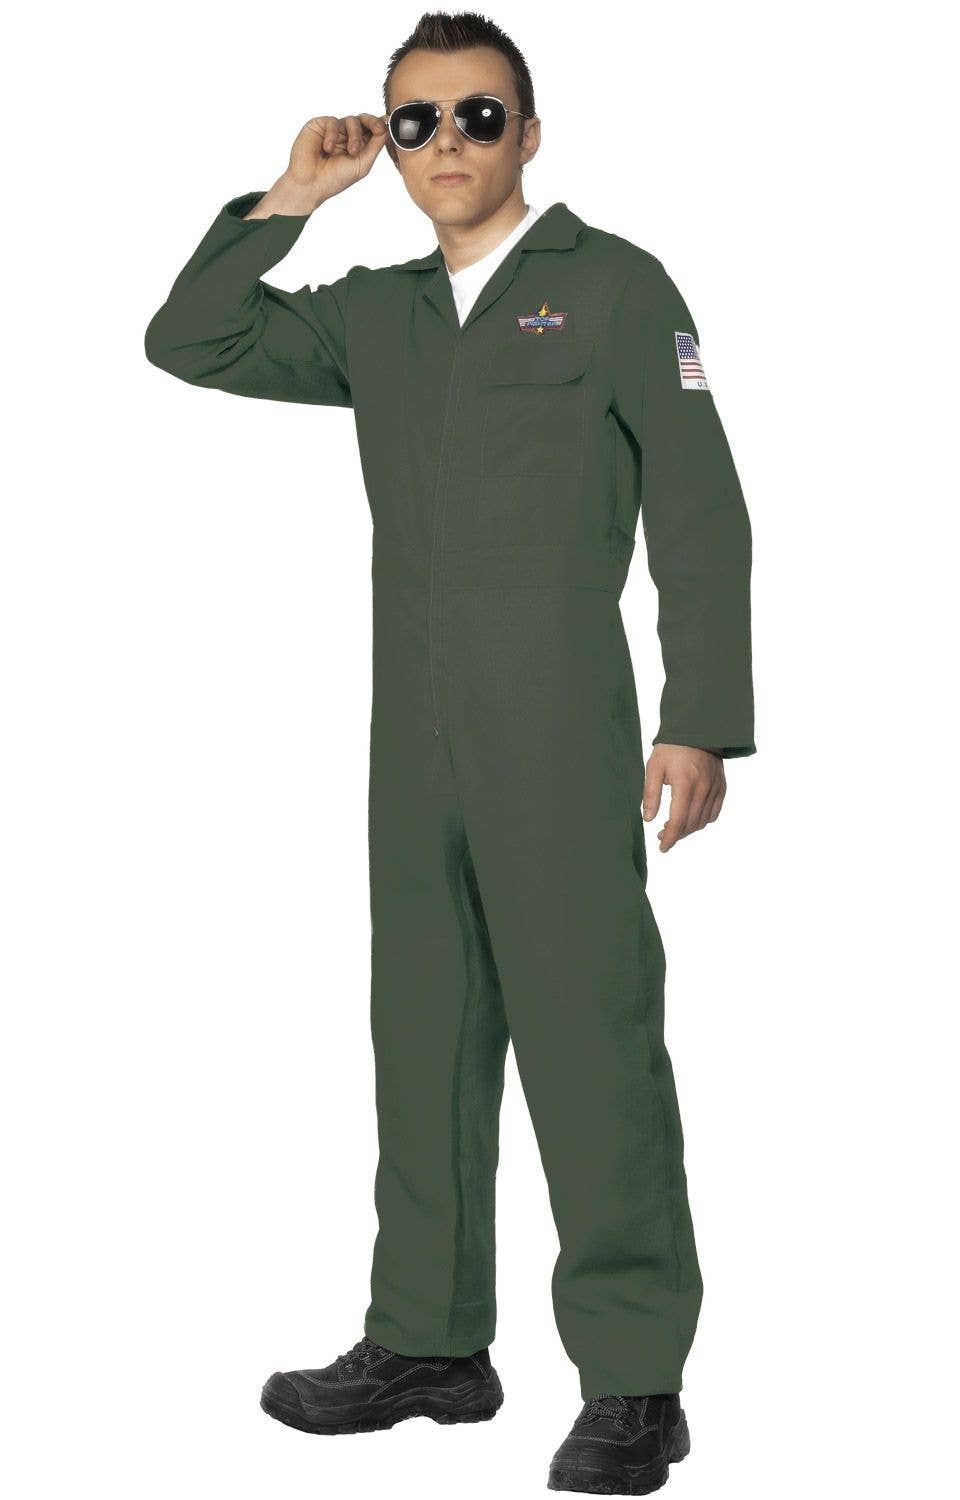 d023bfa1b Aviator Men's Dark Green Flight Suit Costume